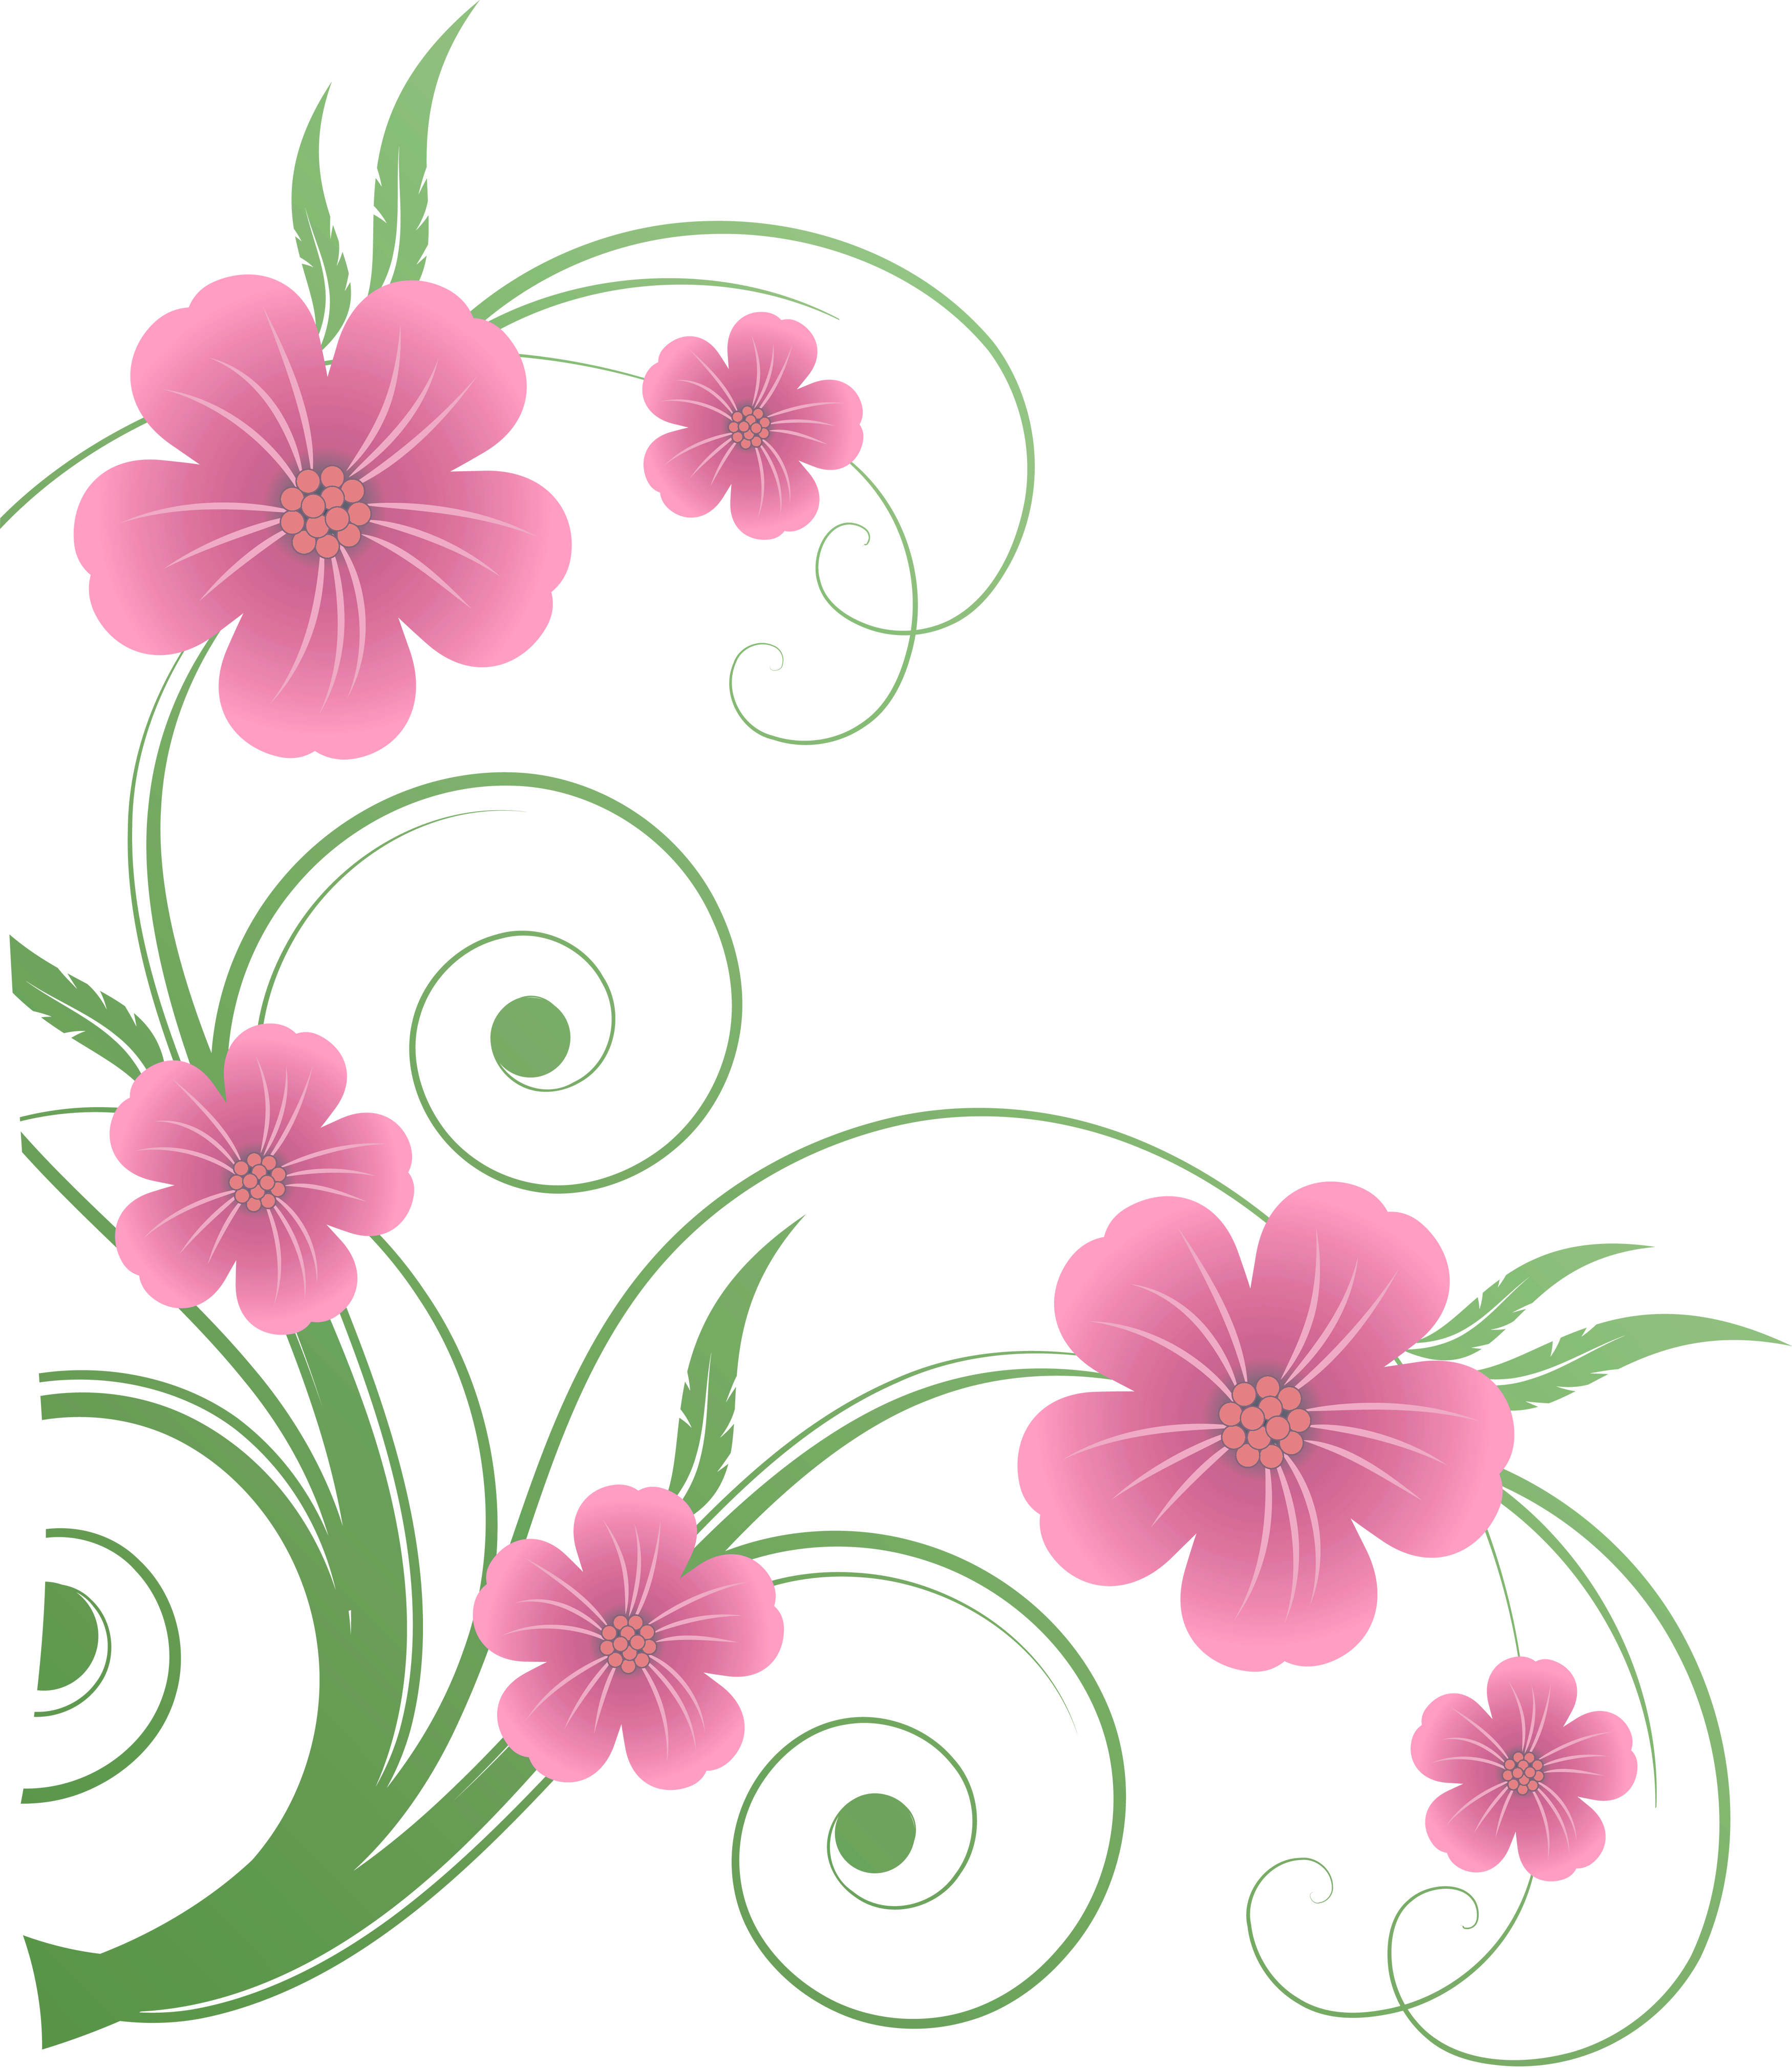 Flowers decor clipart #12